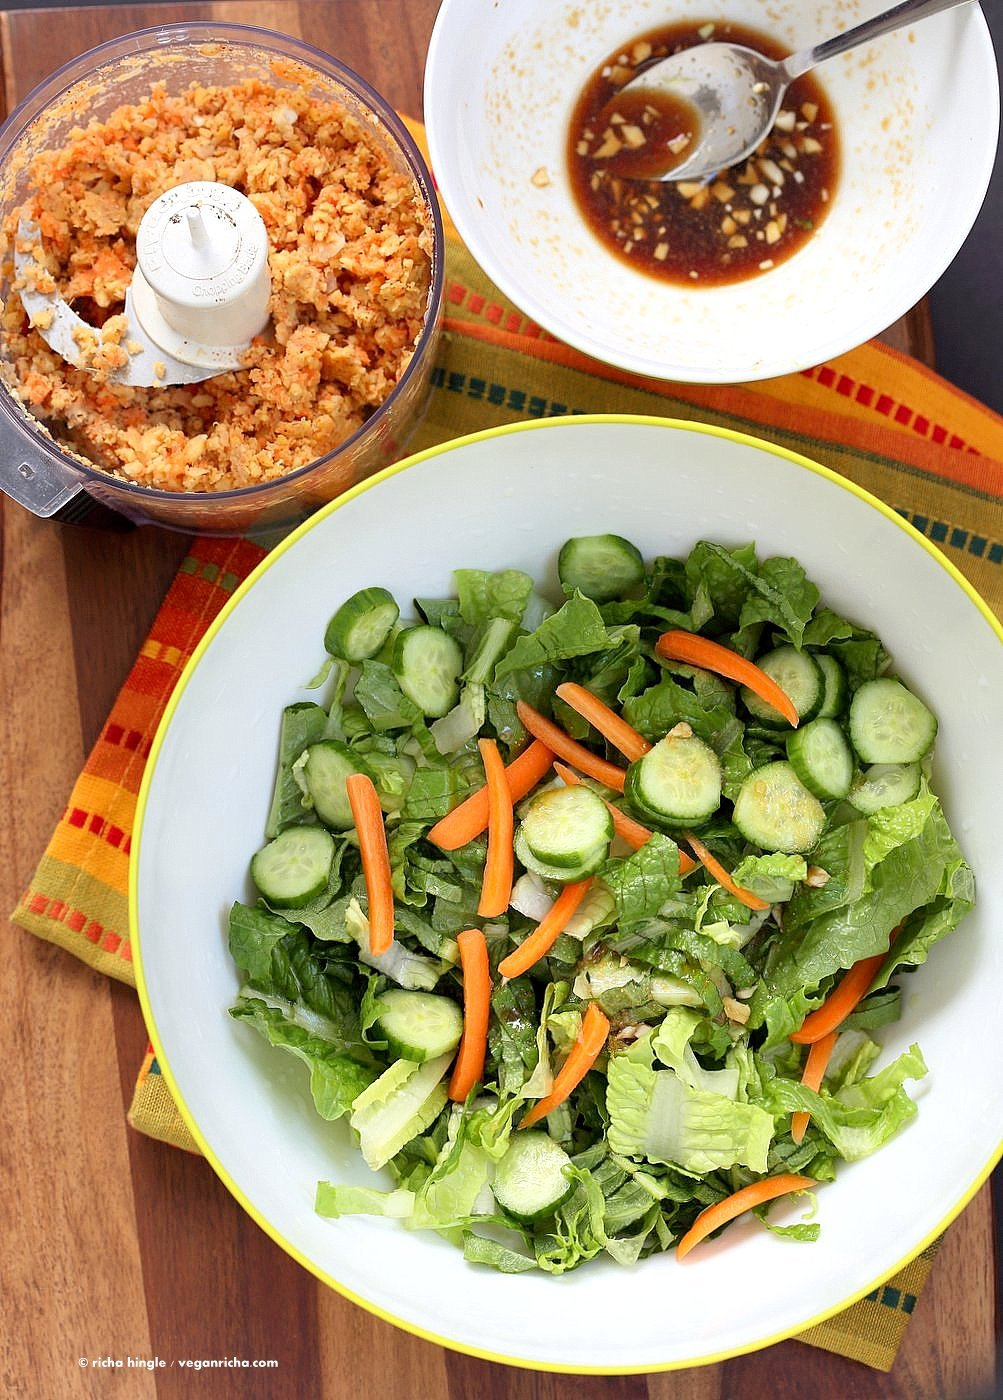 Thai Salad with Chickpea Carrot Crumble & Garlic Sesame Soy Sauce Dressing. Crunchy Summer Salad with Ginger Chickpea Carrot crumble and garlicky dressing. Use lentils for variation. Add roasted peanut or other nuts. Vegan Gluten-free Recipe | VeganRicha.com